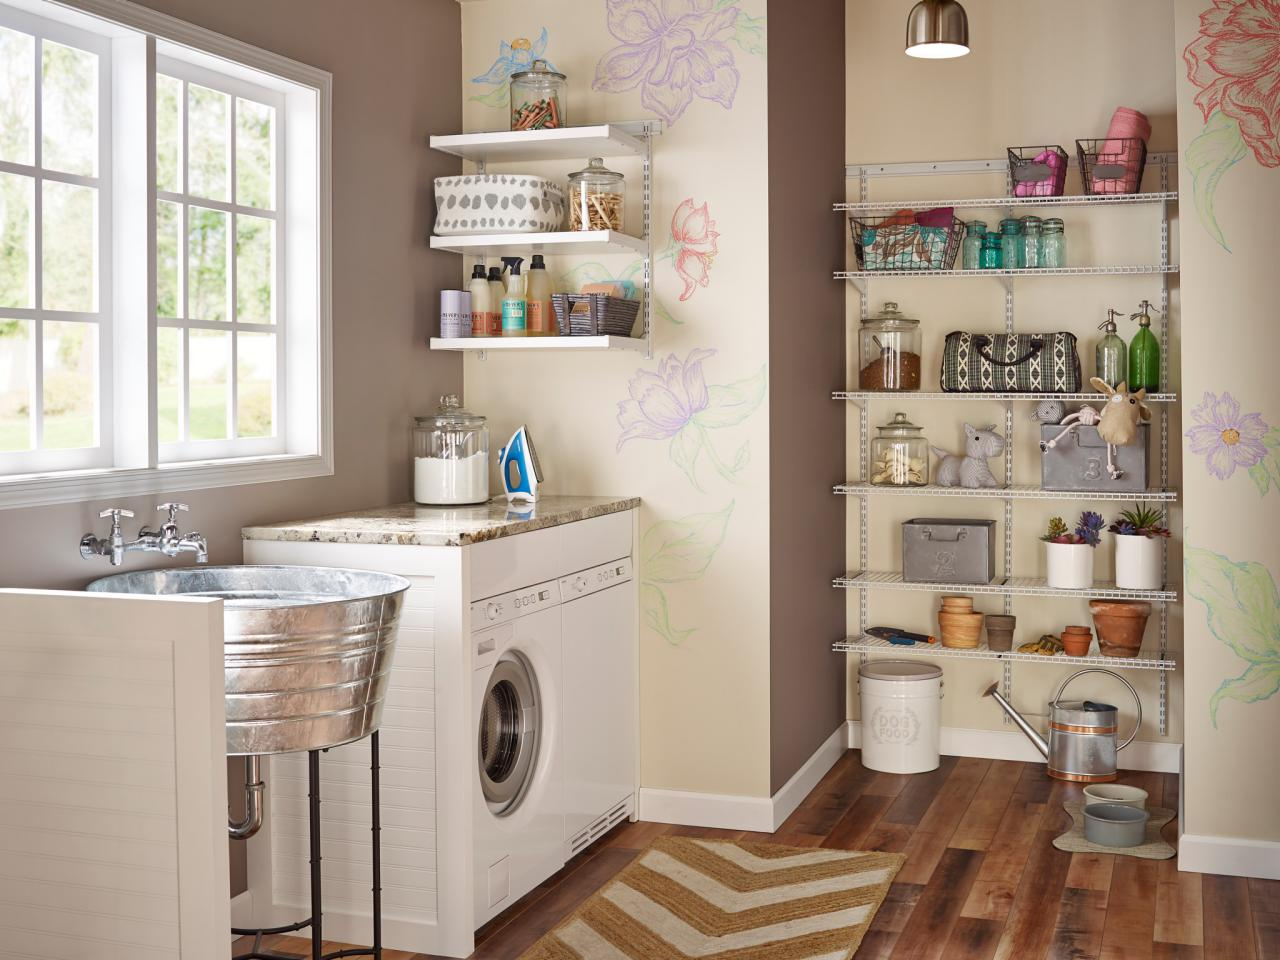 Laundry Room With Adjule Shelving